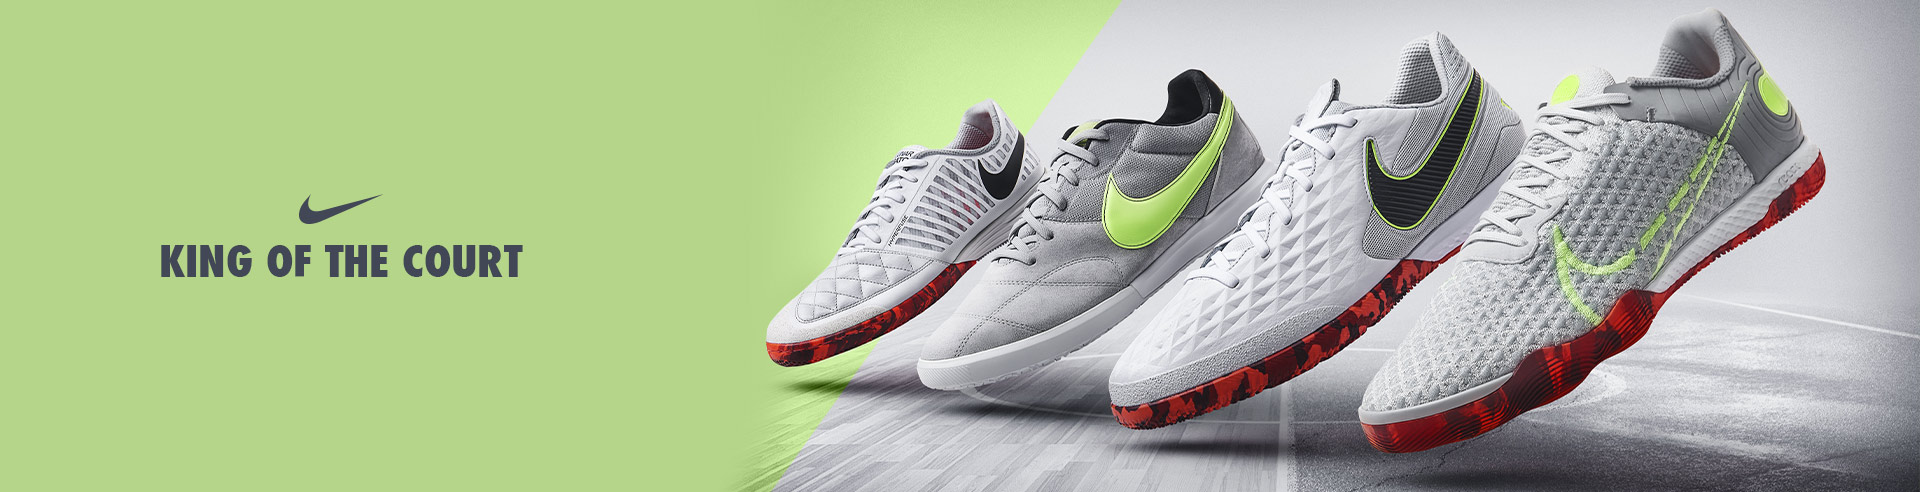 NIKE SMALL SIDED PACK MARZO 2021